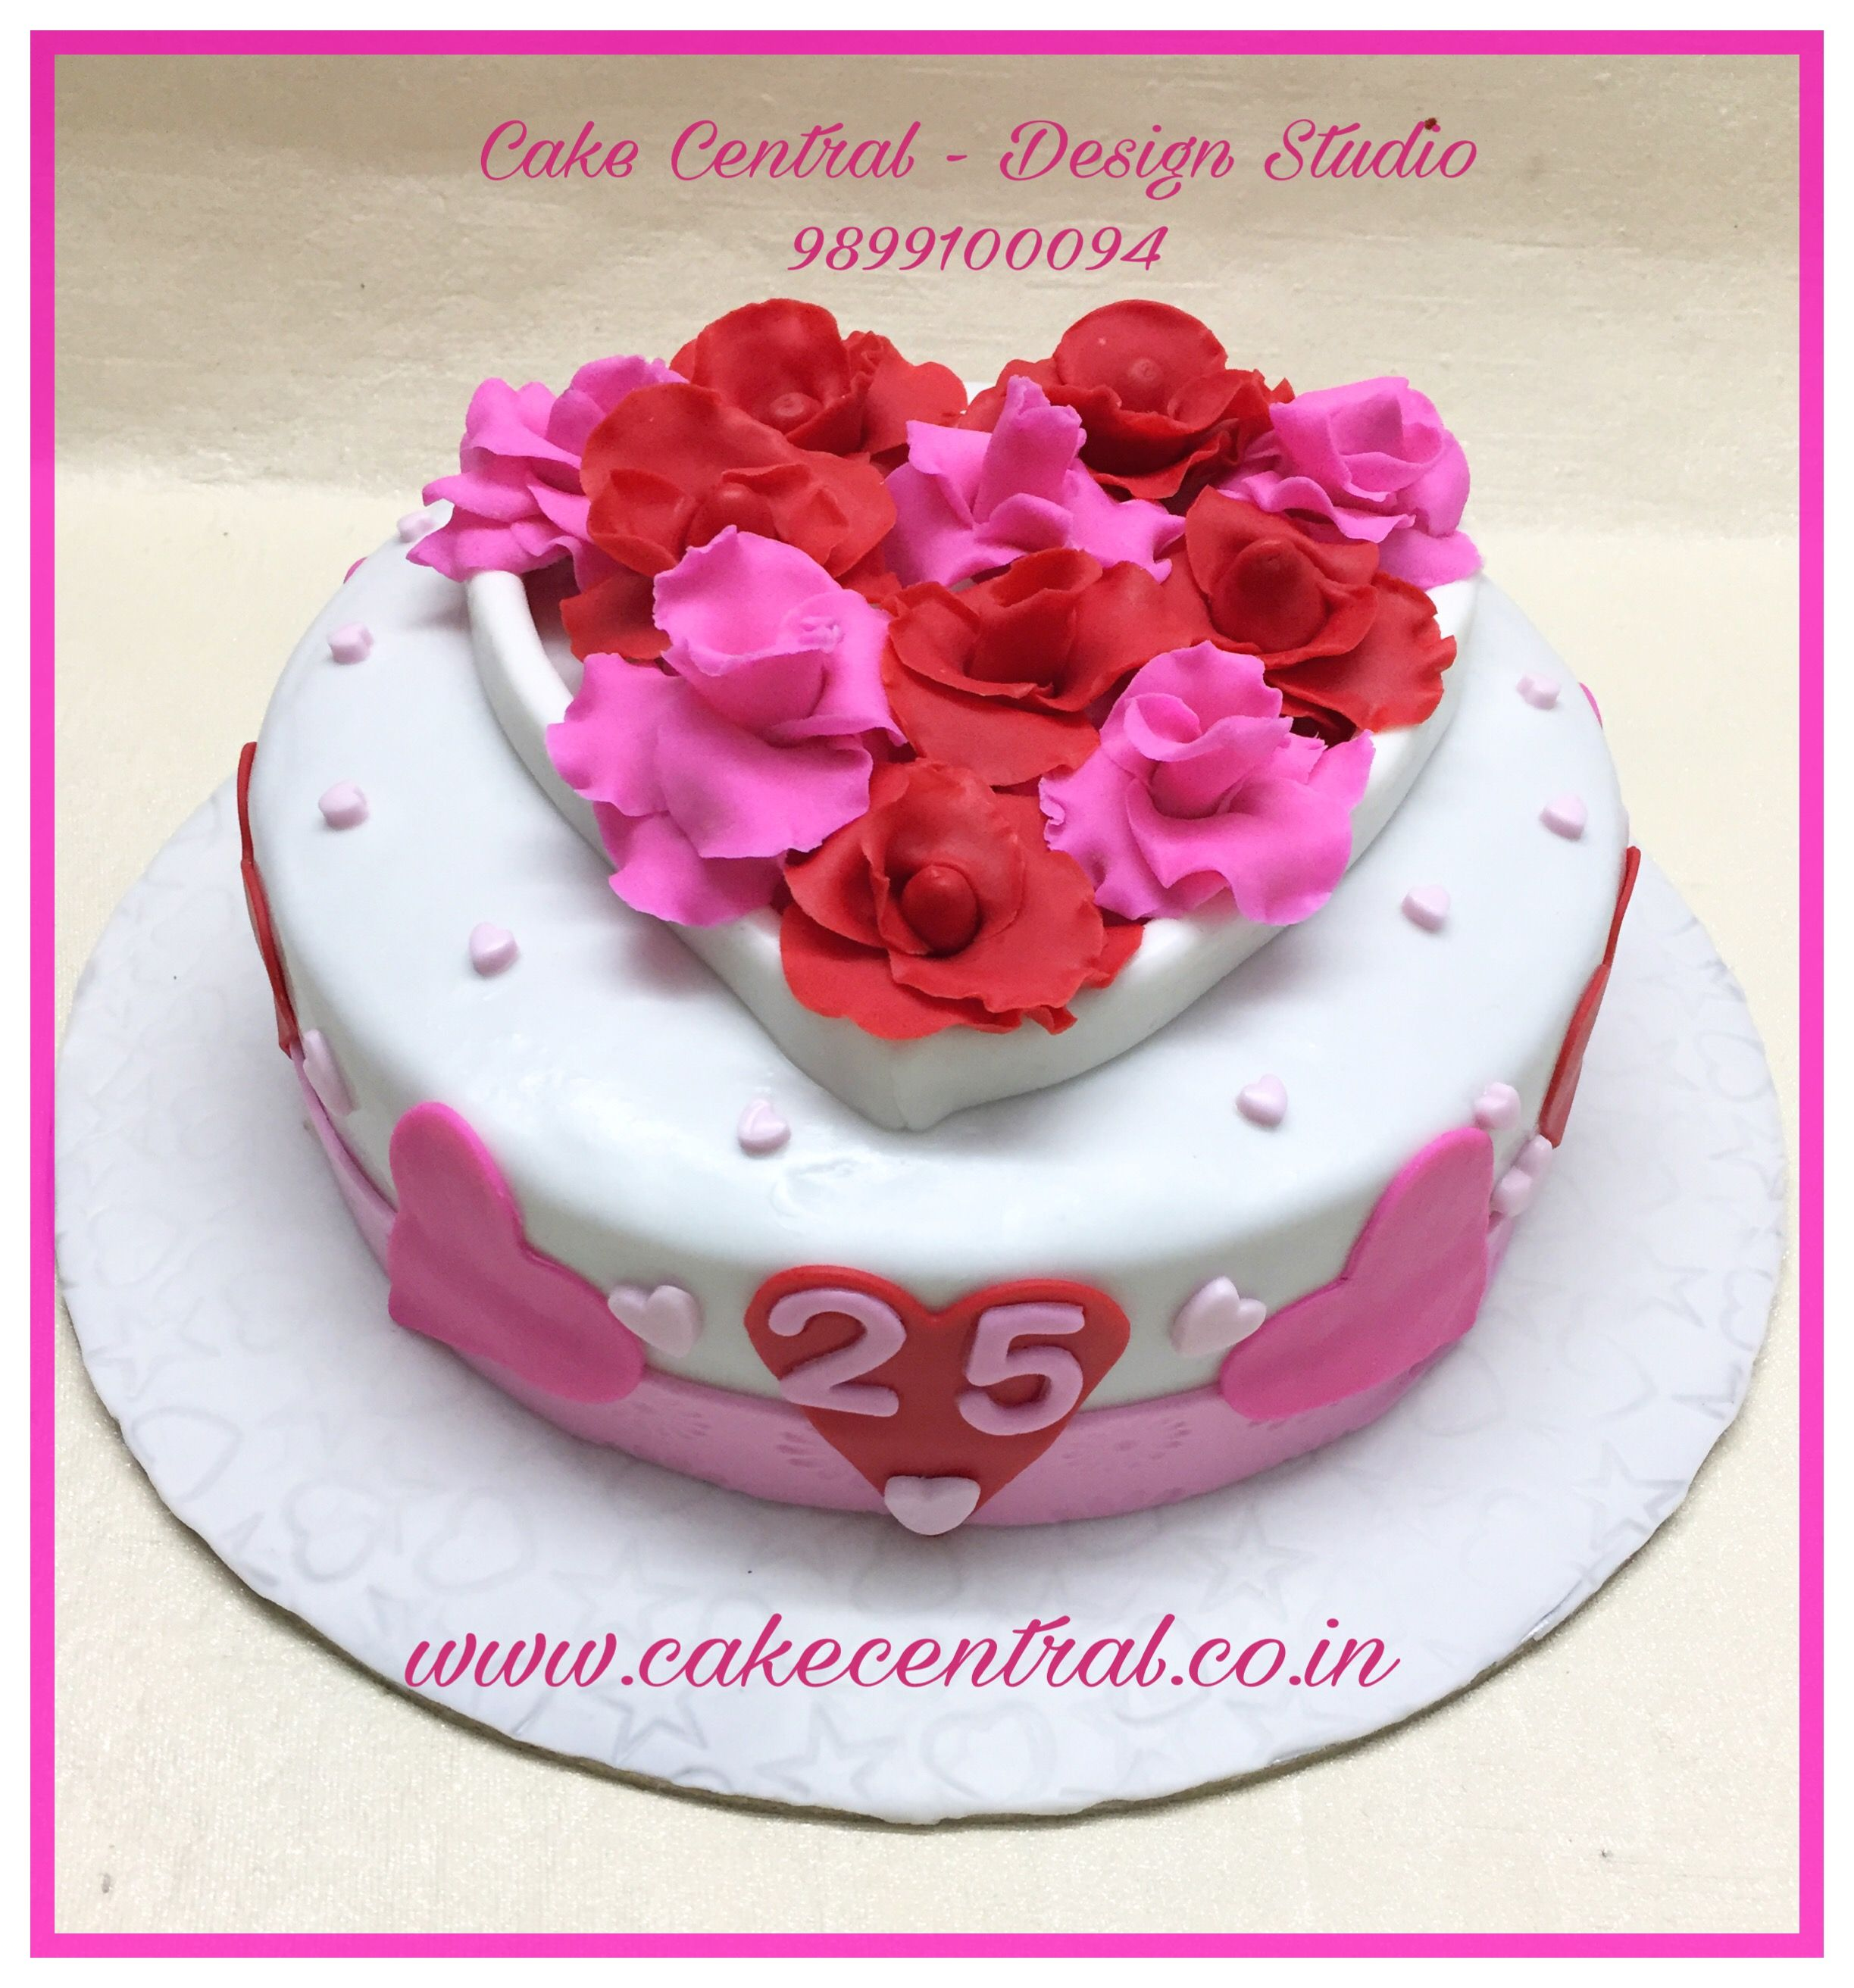 Roses cake an elegnet birthday cake or a anniversary cake for a roses cake an elegnet birthday cake or a anniversary cake for a flower lover with izmirmasajfo Image collections